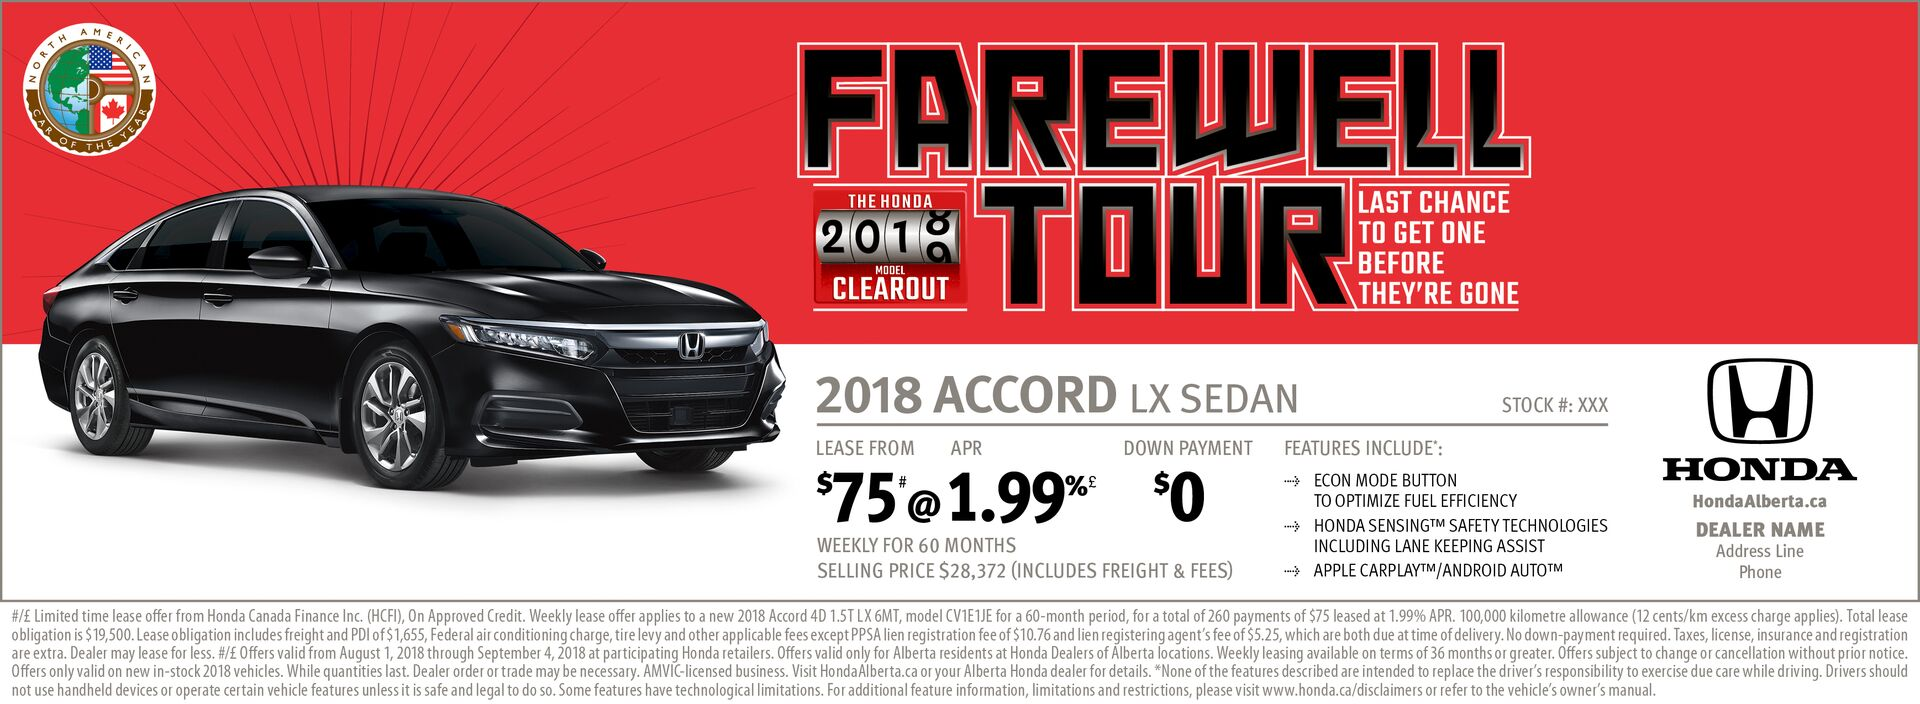 Honda Civic Farewell Tour